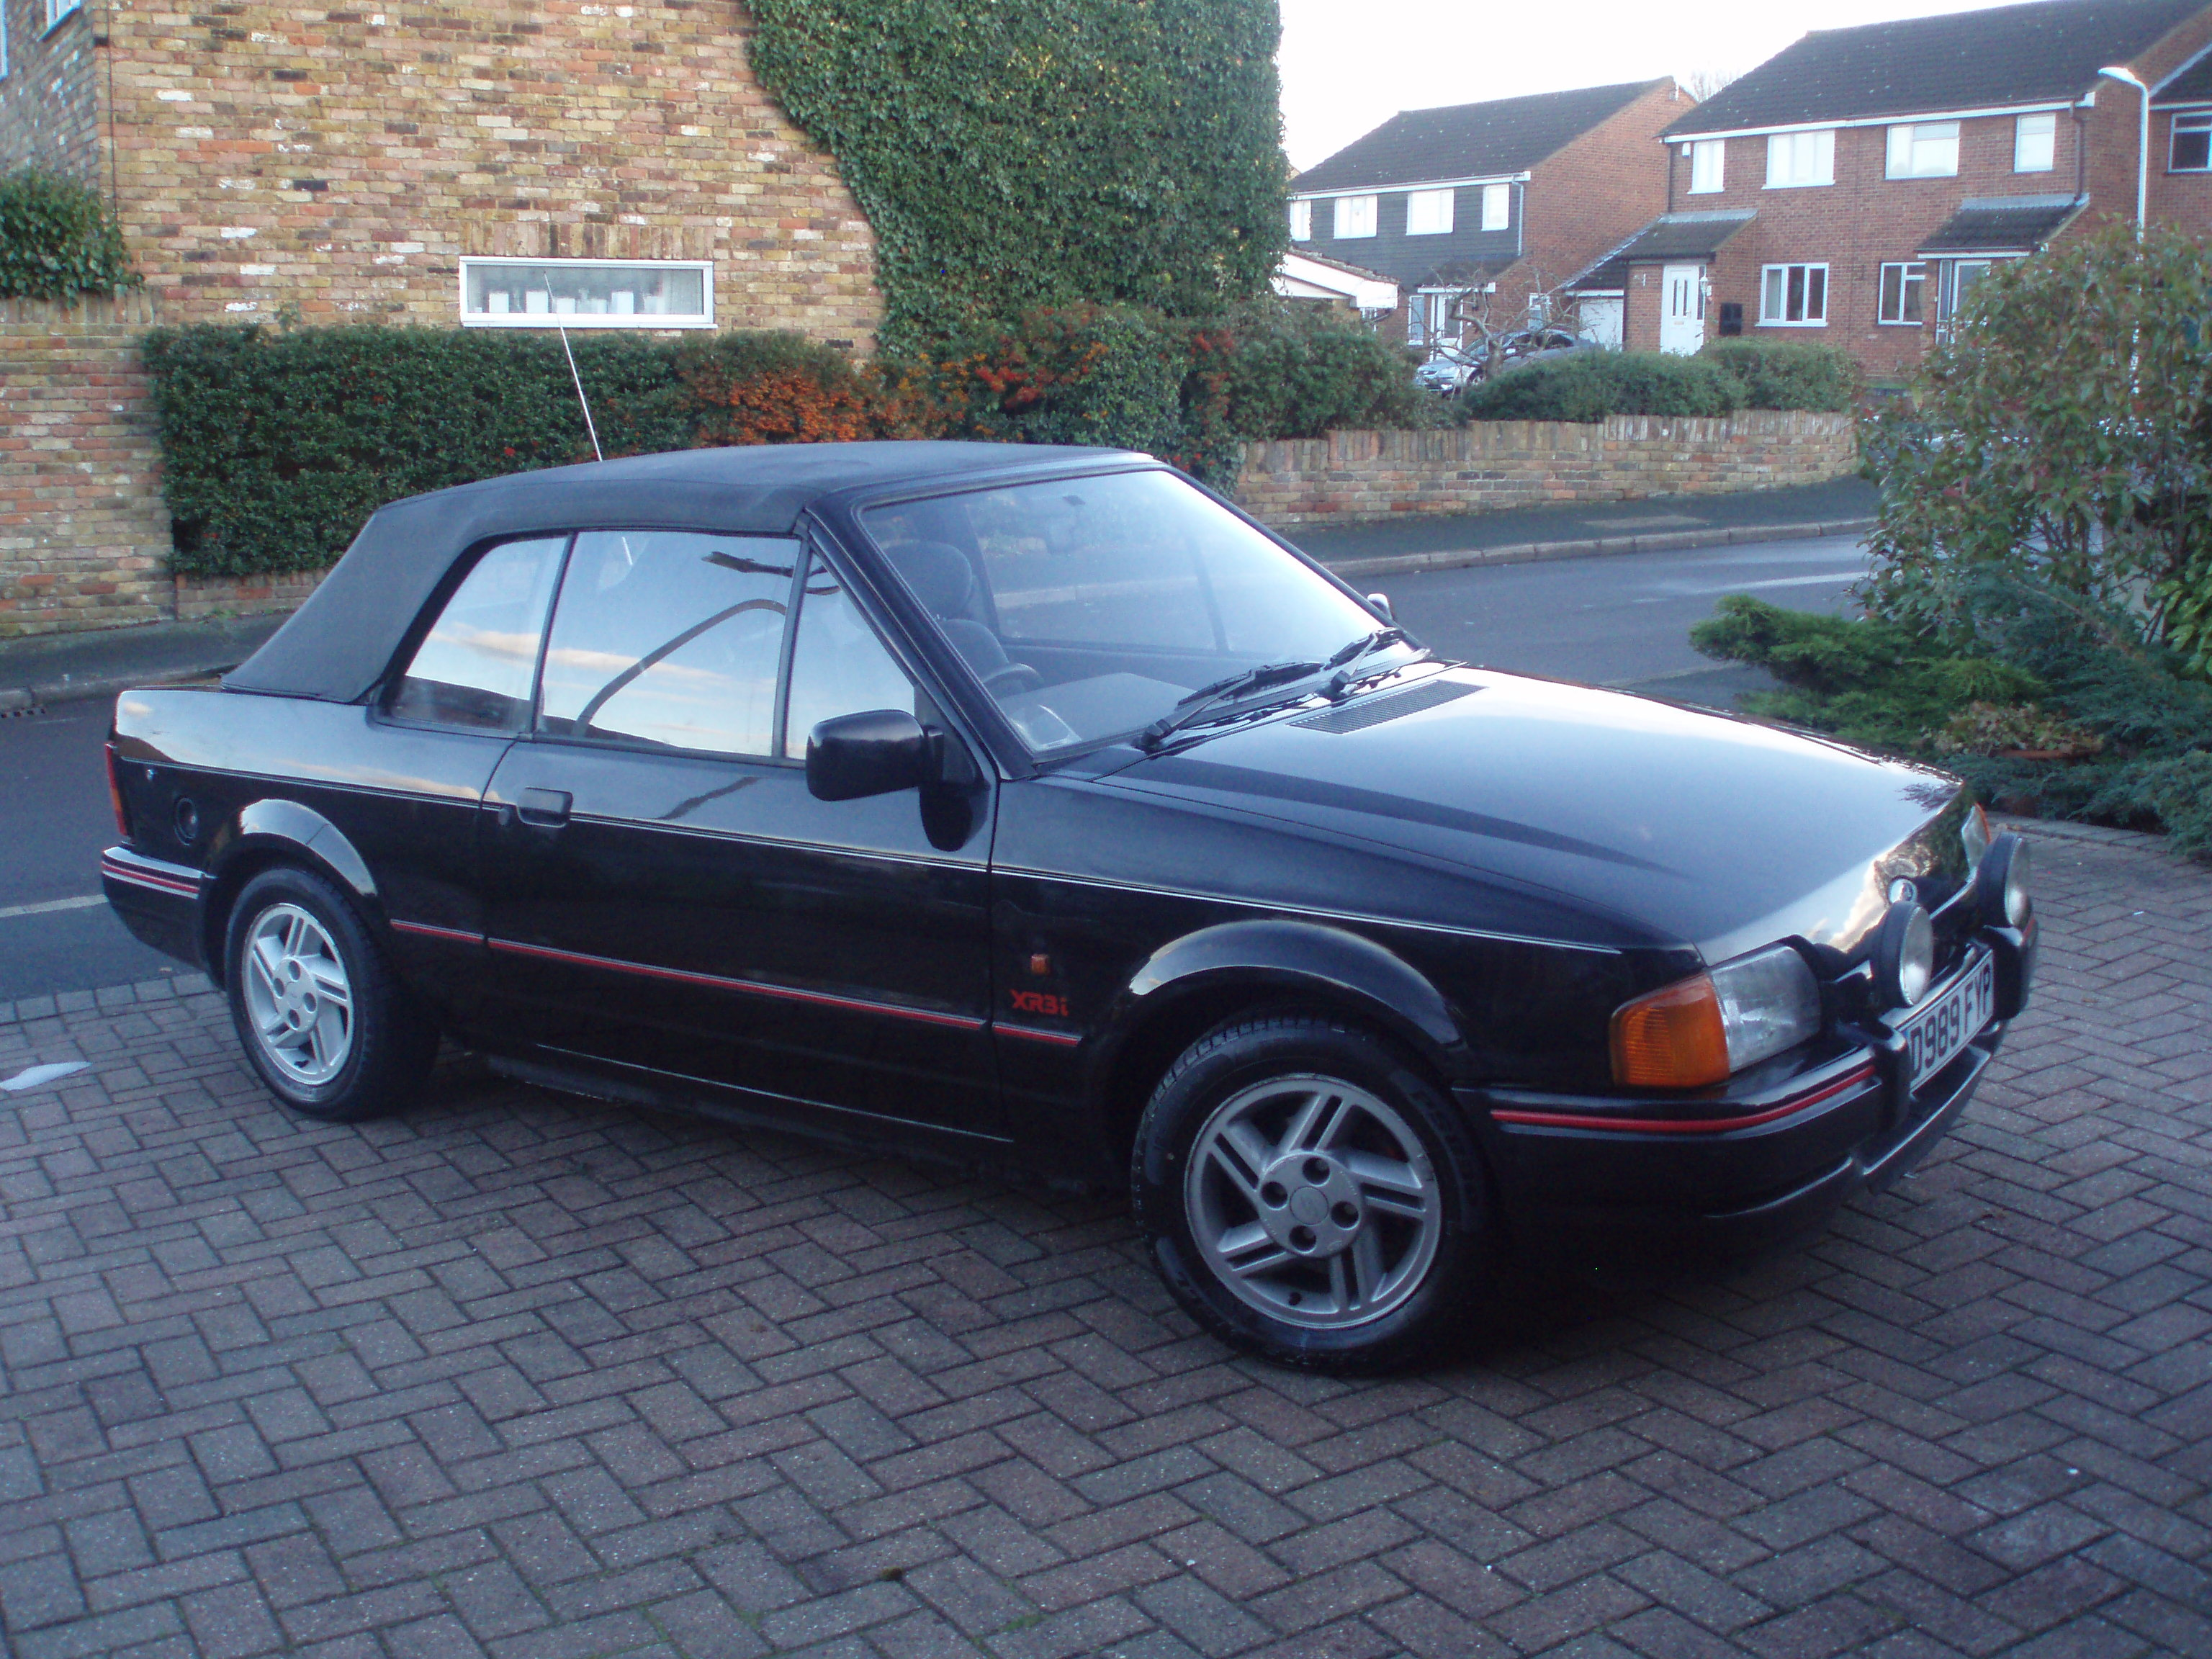 1981 ford escort xr3 cabriolet. Black Bedroom Furniture Sets. Home Design Ideas